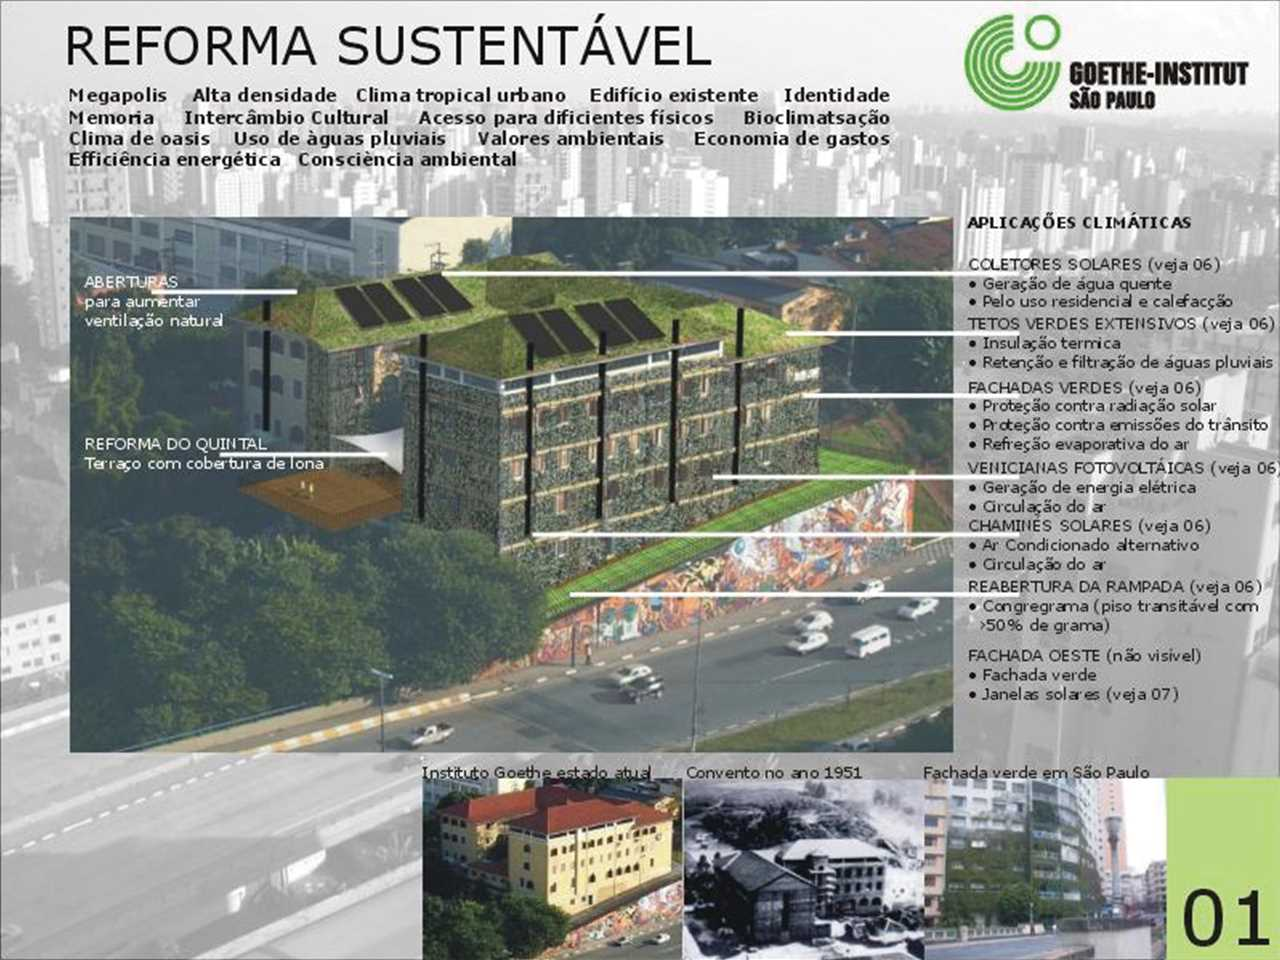 sustainable renovation of the goethe institute s o paulo